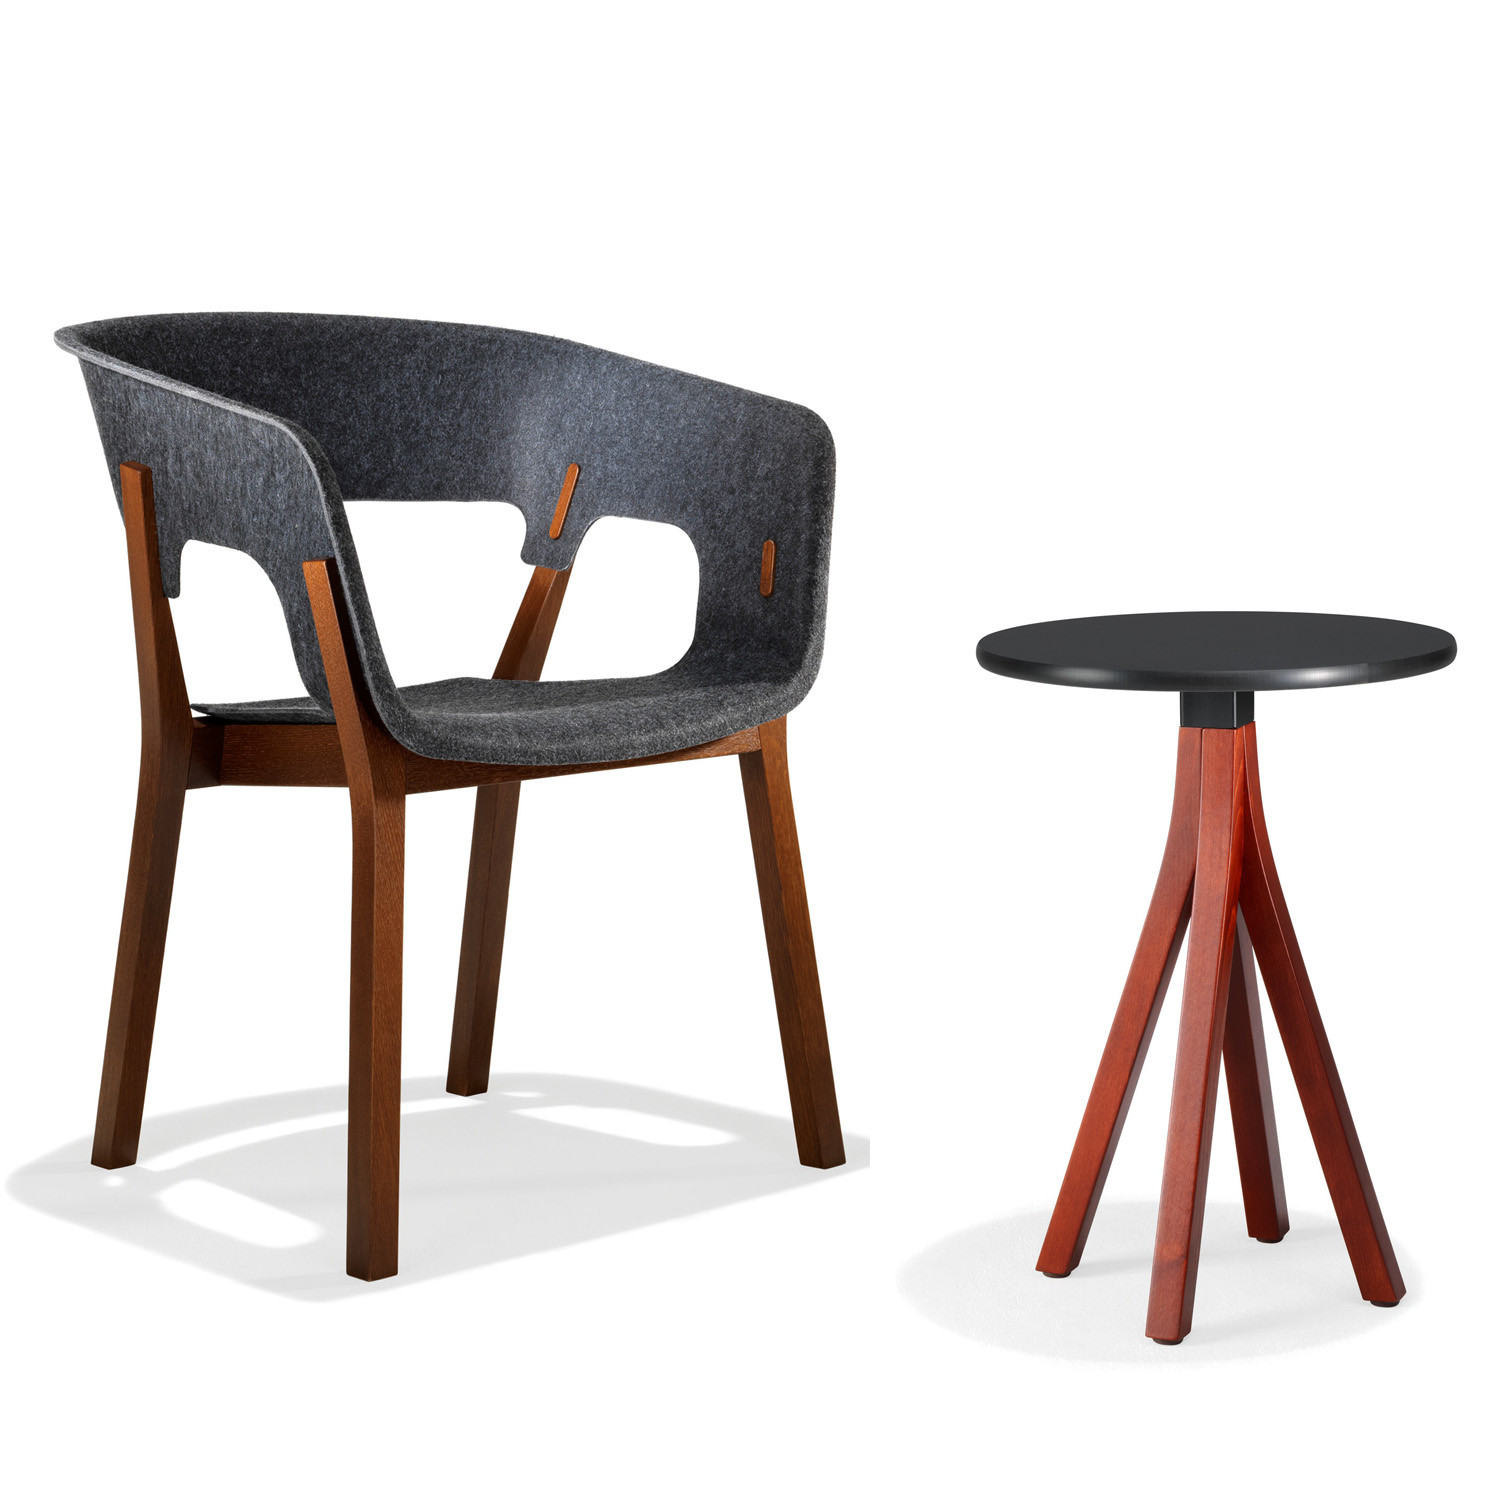 3000 Njord Wooden Chair and Table